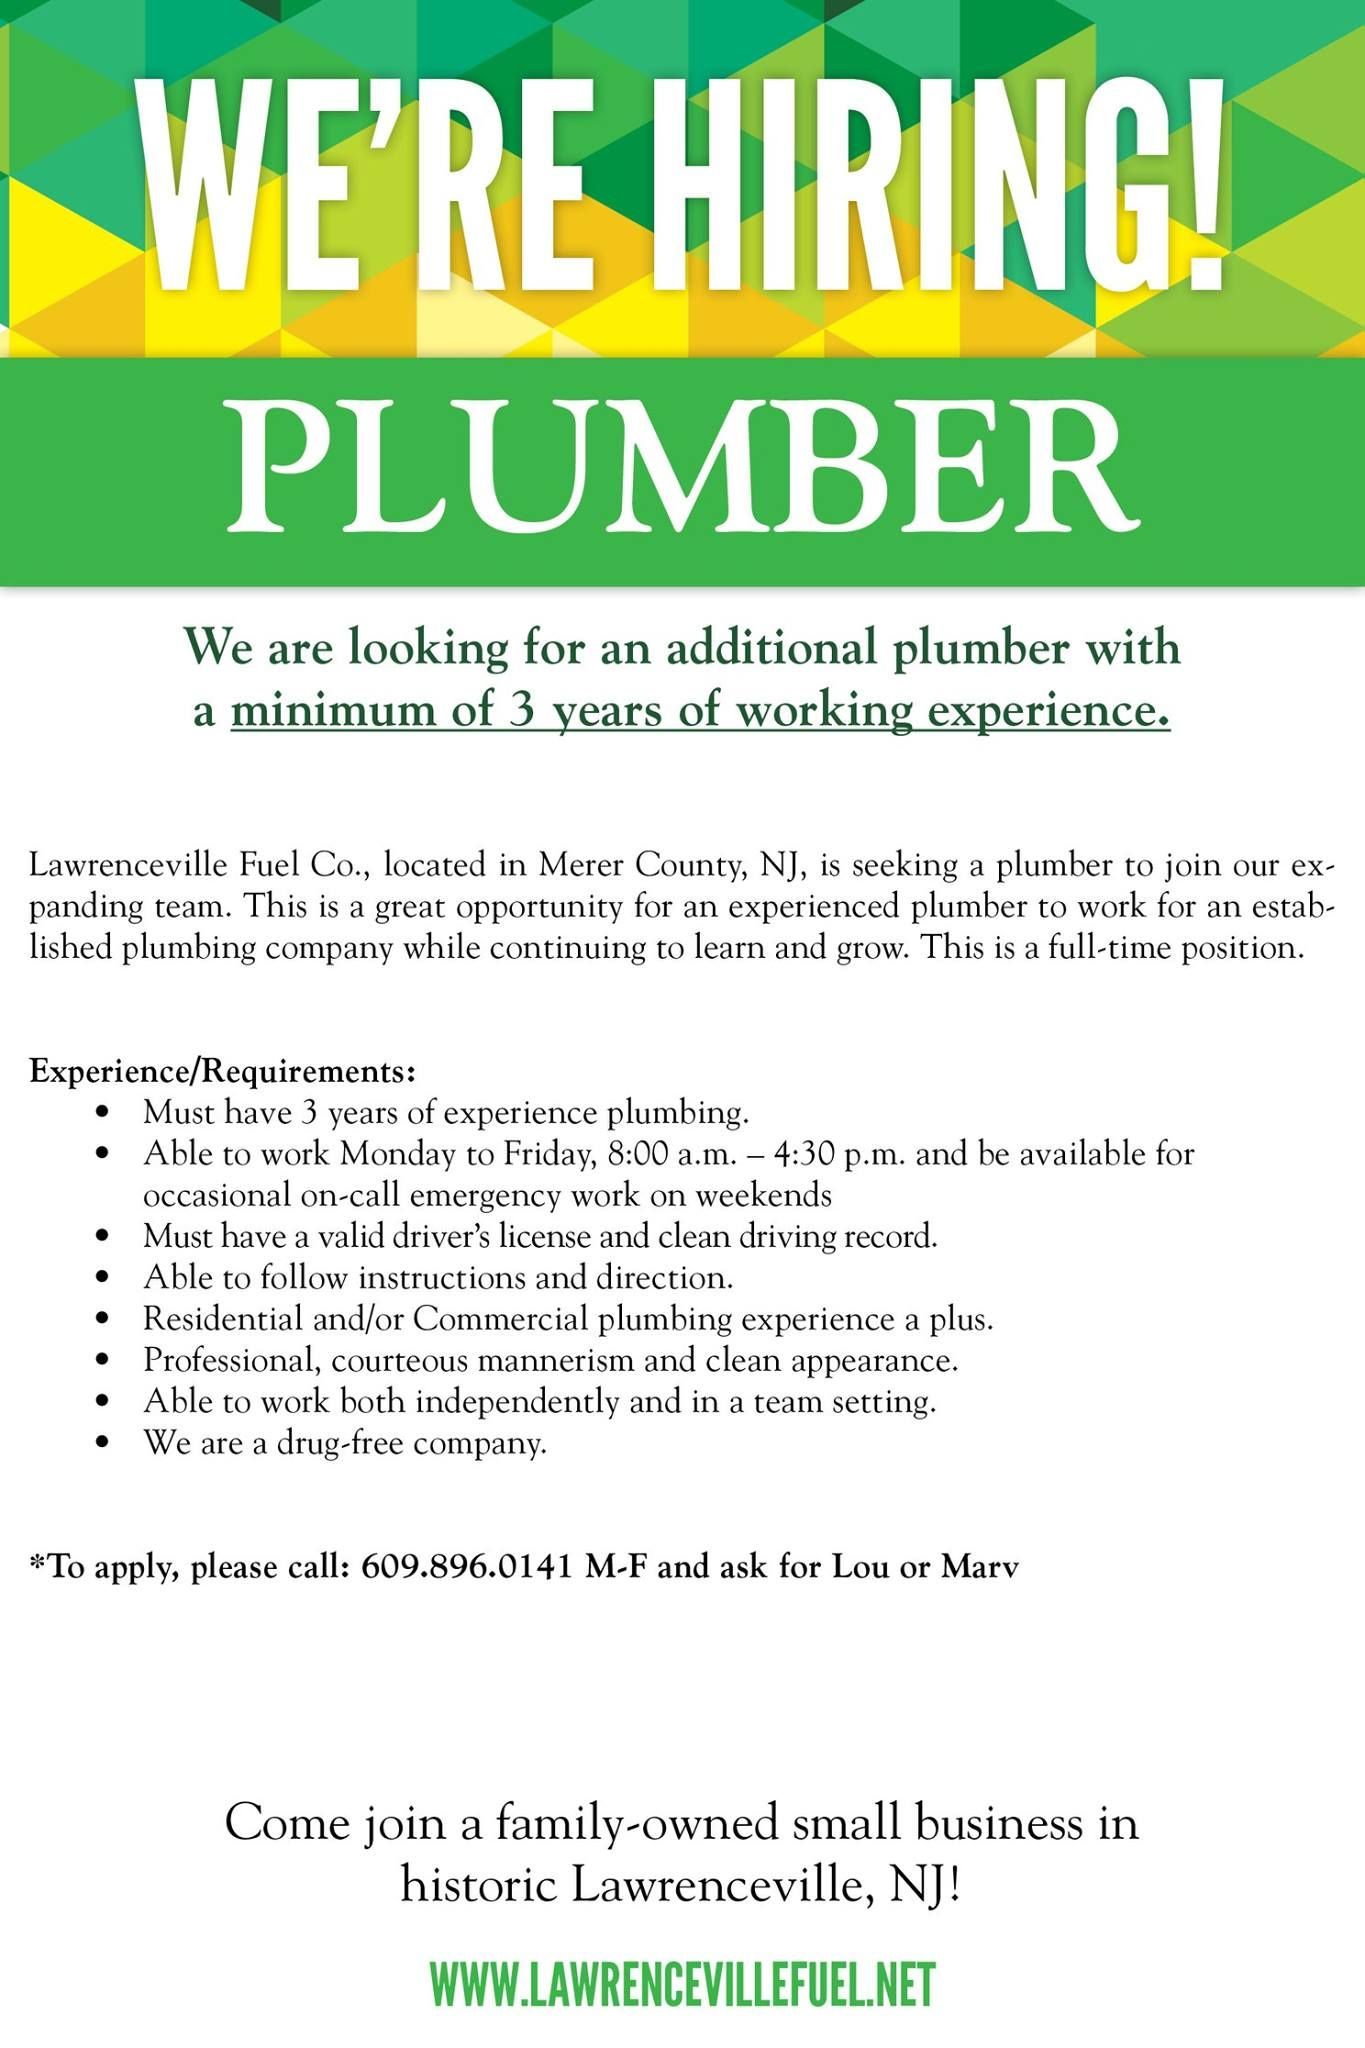 We're hiring! Lawrenceville Fuel